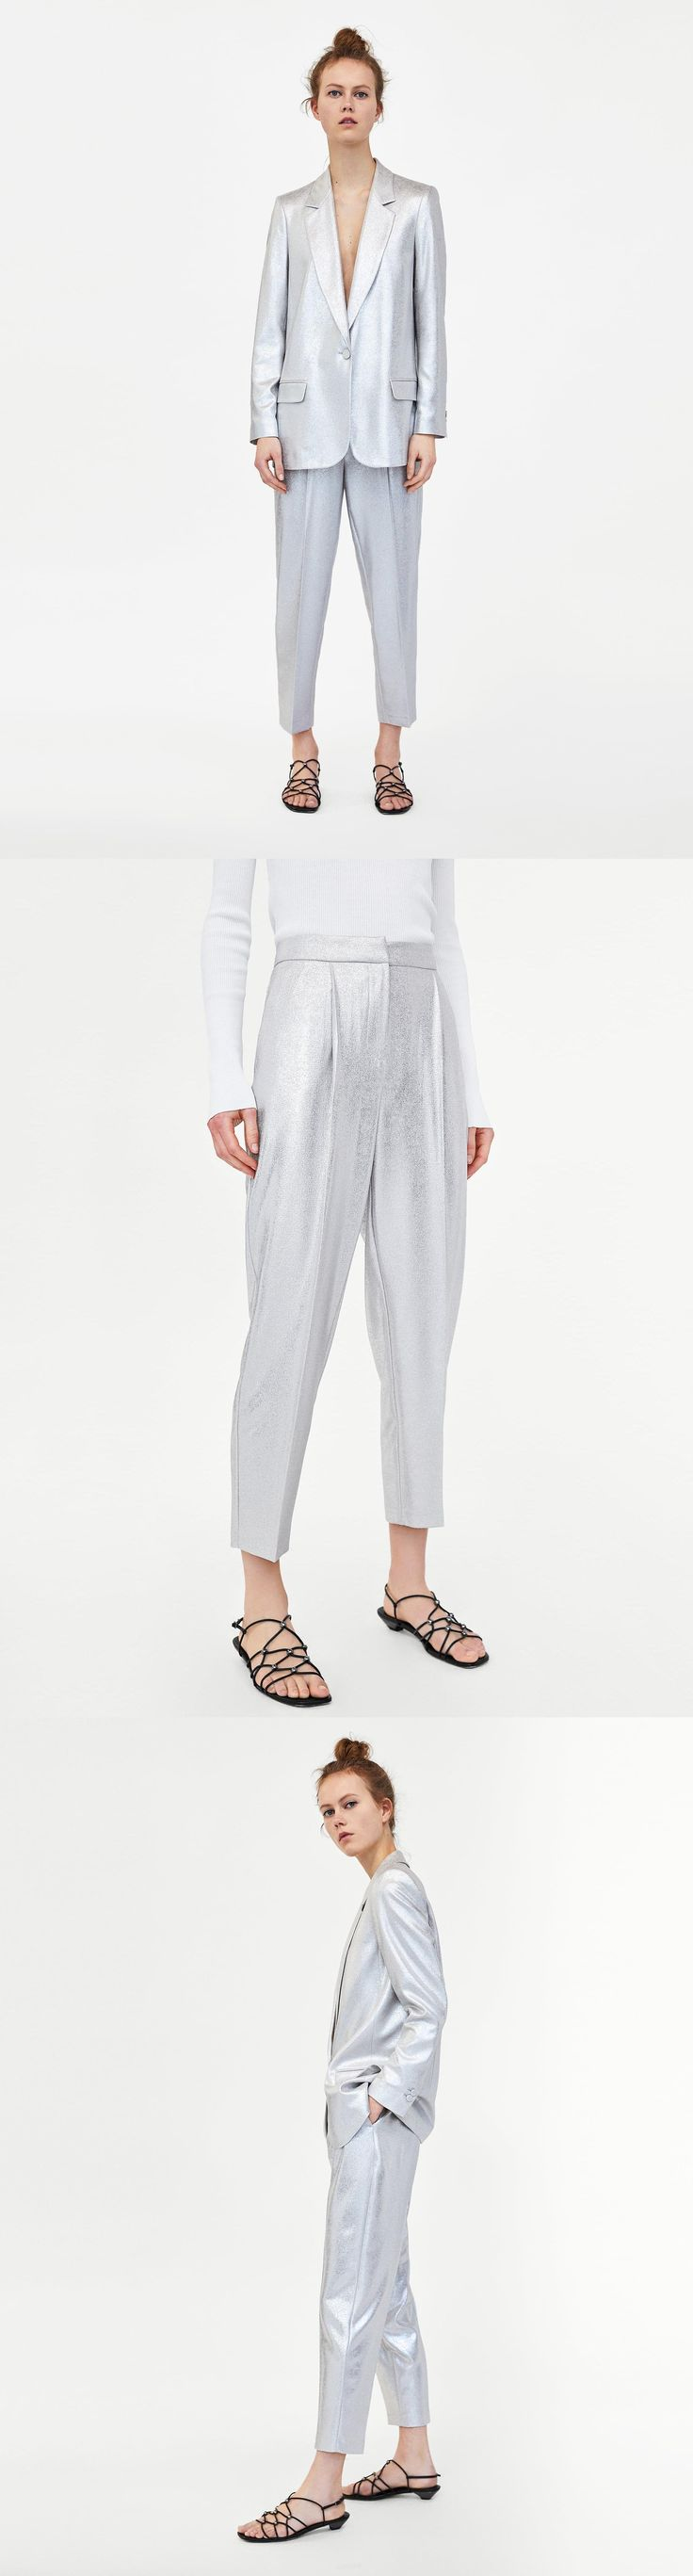 Metallic Trousers // 49.90 USD // Zara // Flowing mid-rise trousers with pleated front detail. Front pockets and welt pockets in the back. Metal zip, inside button and hook fastening in the front. HEIGHT OF MODEL: 178 CM / 5′ 10″